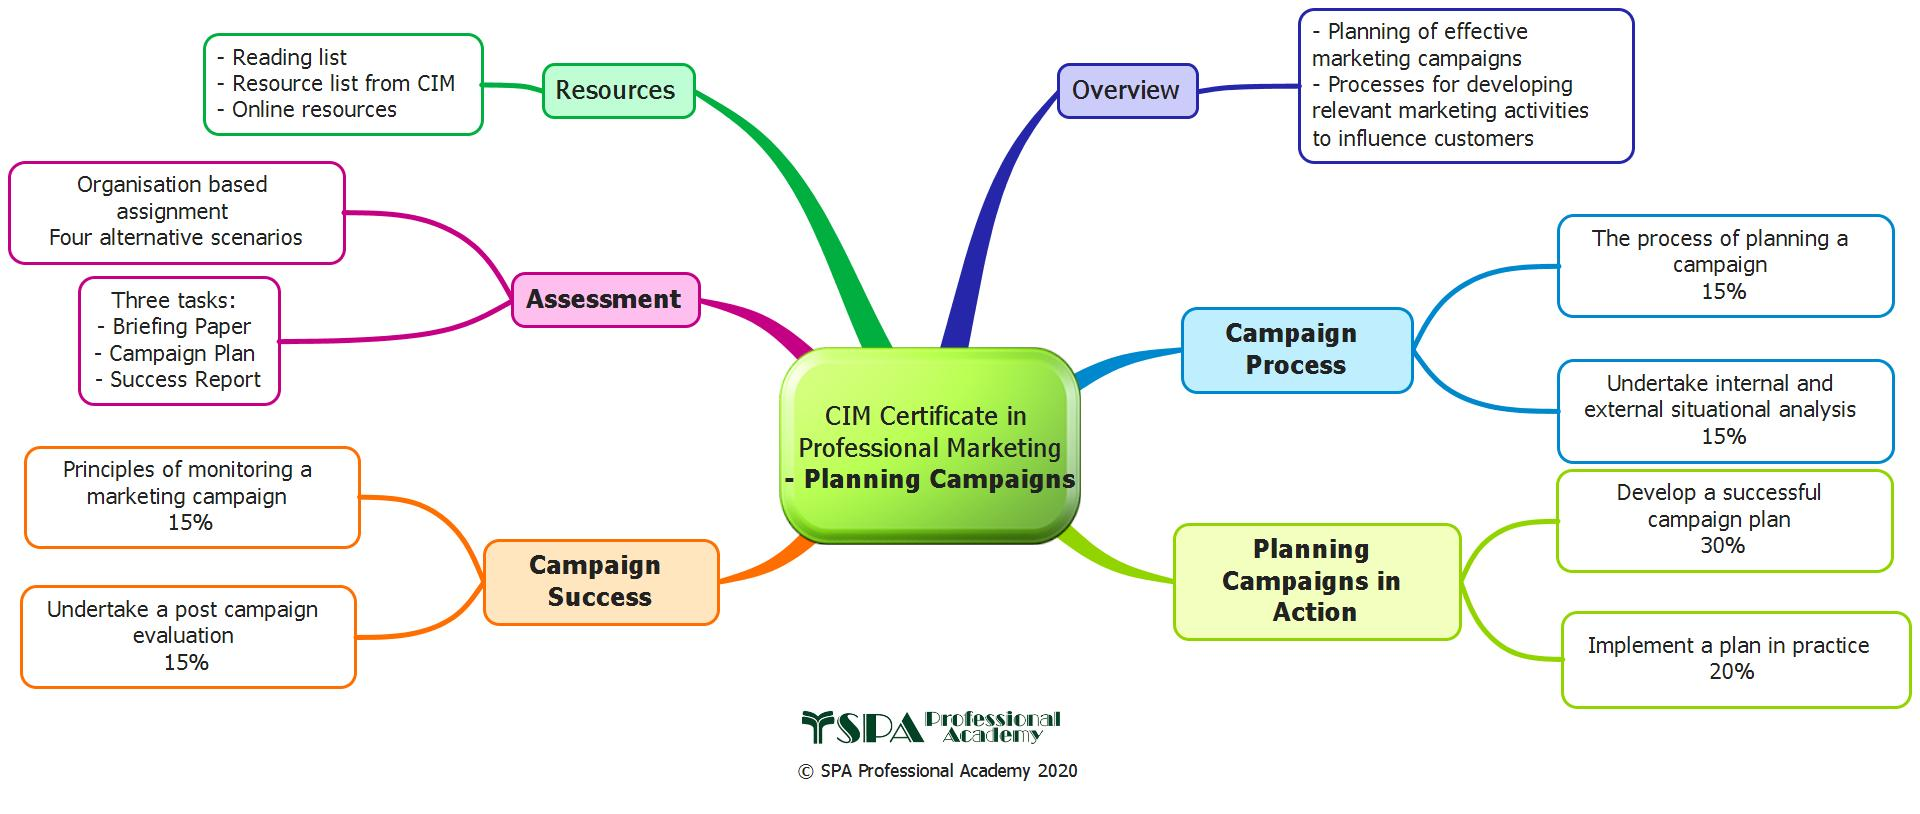 Planning Campaigns